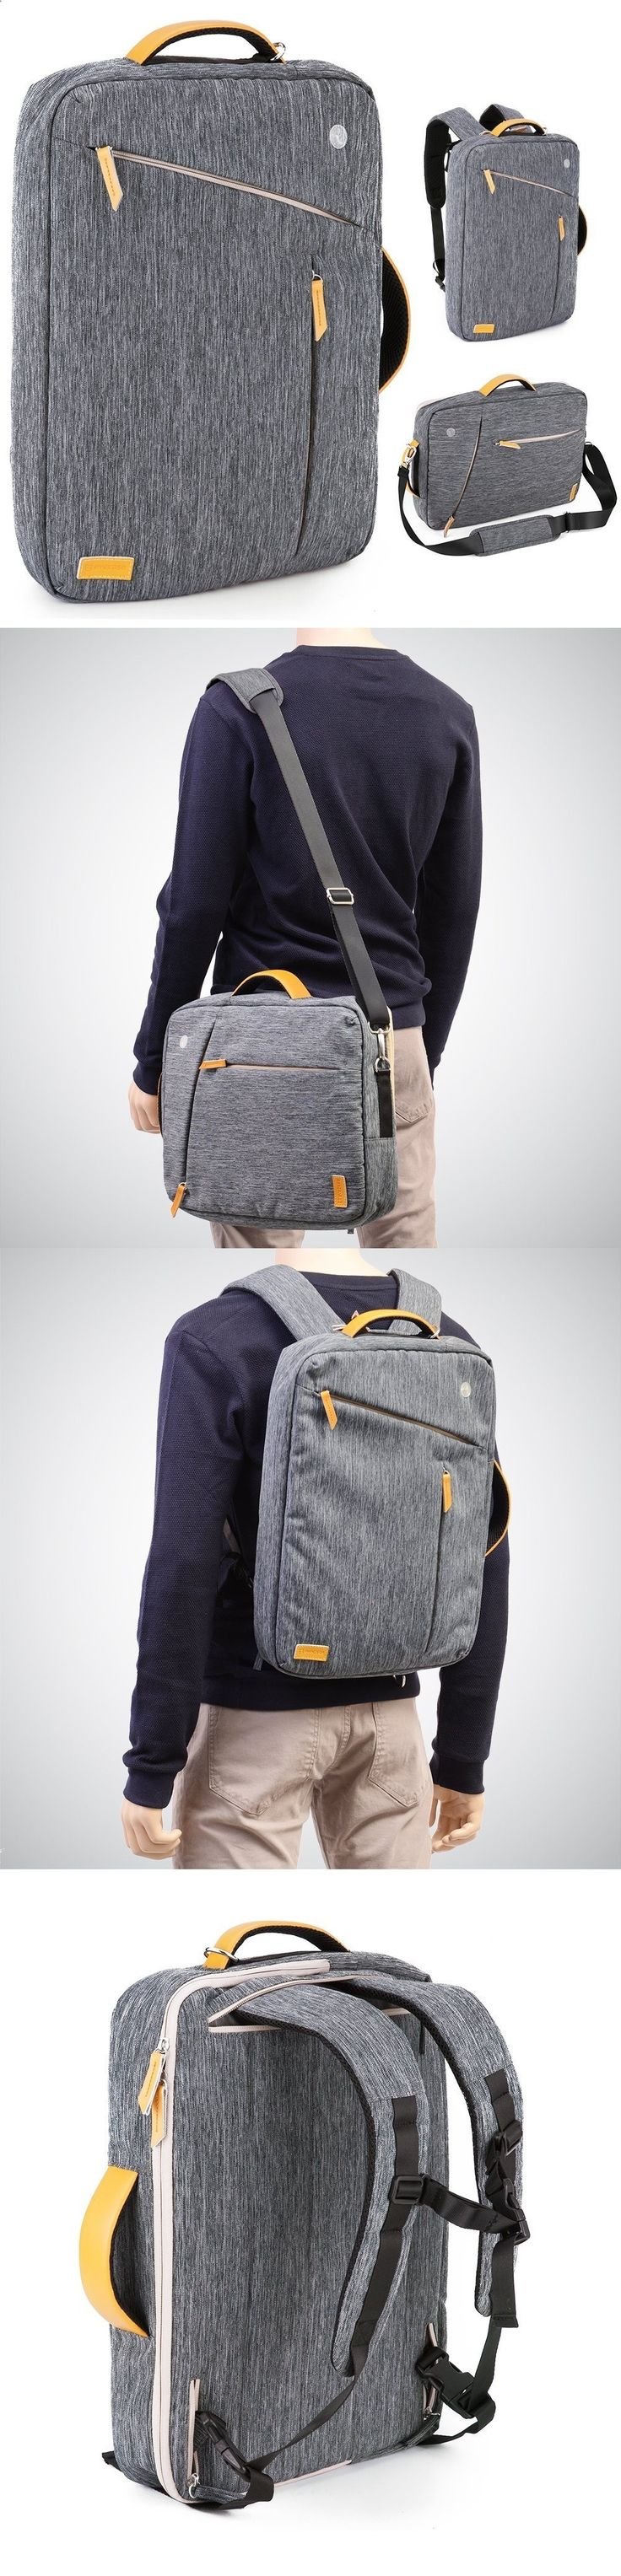 Ultrabook Laptops - Ultrabook Laptops - Convertible Laptop Canvas Briefcase Backpack Ebags BackPack Tumblr   leather backpack tumblr   cute backpacks tumblr ebagsbackpack.tum... - TOP10 BEST LAPTOPS 2017 (ULTRABOOK, HYBRID, GAMES ...)  - TOP10 BEST LAPTOPS 2017 (ULTRABOOK, HYBRID, GAMES ...)